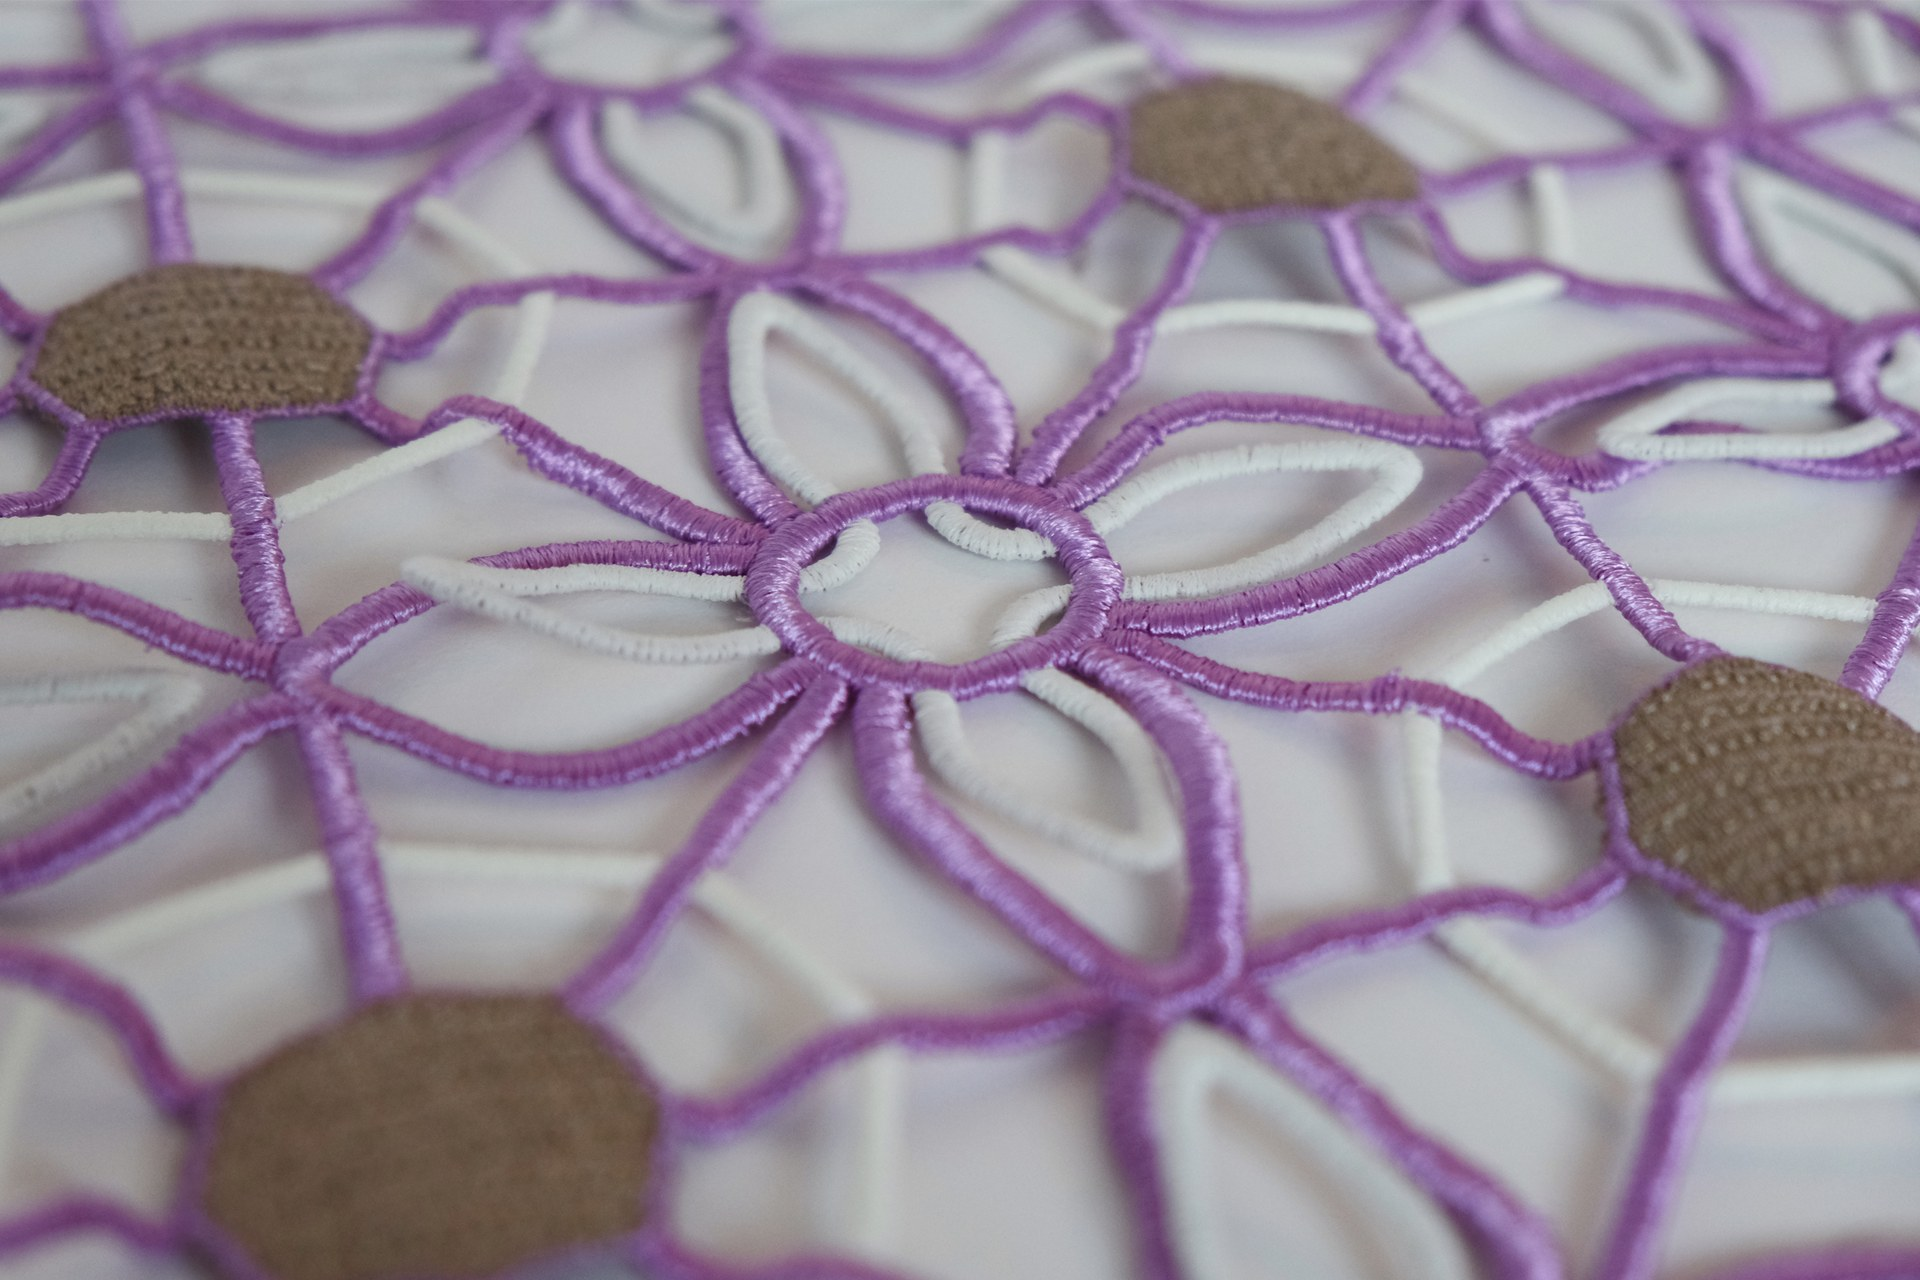 Detail: flower shape repeated pattern with 3 types of embroidery thread. Designed to allow movement of the patels